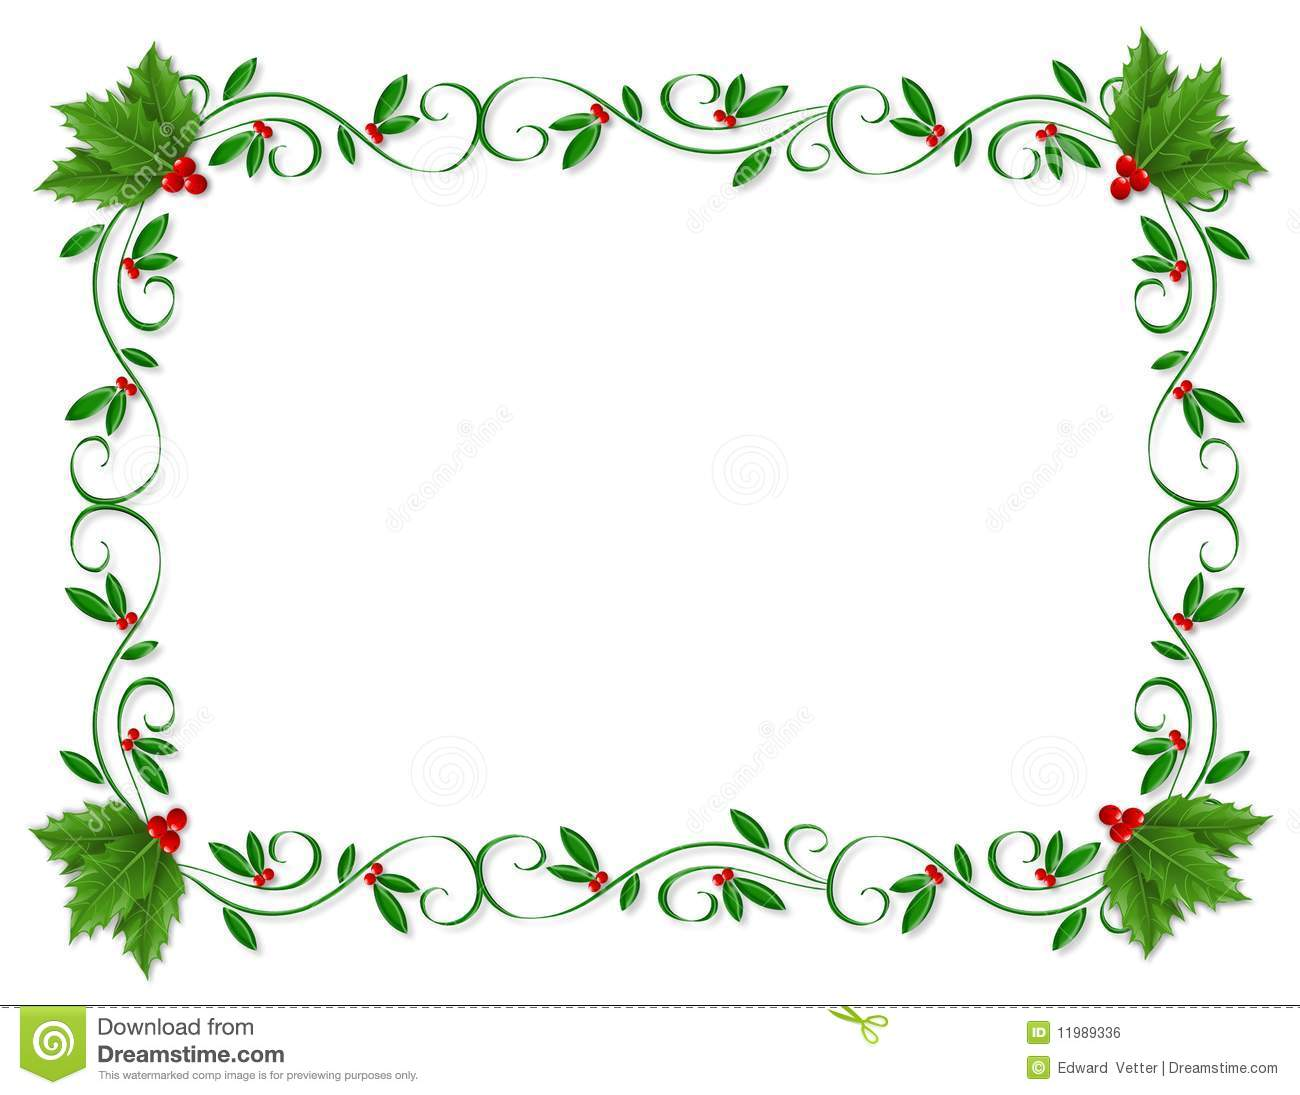 Christmas clip art borders . - Christmas Border Clip Art Free Download